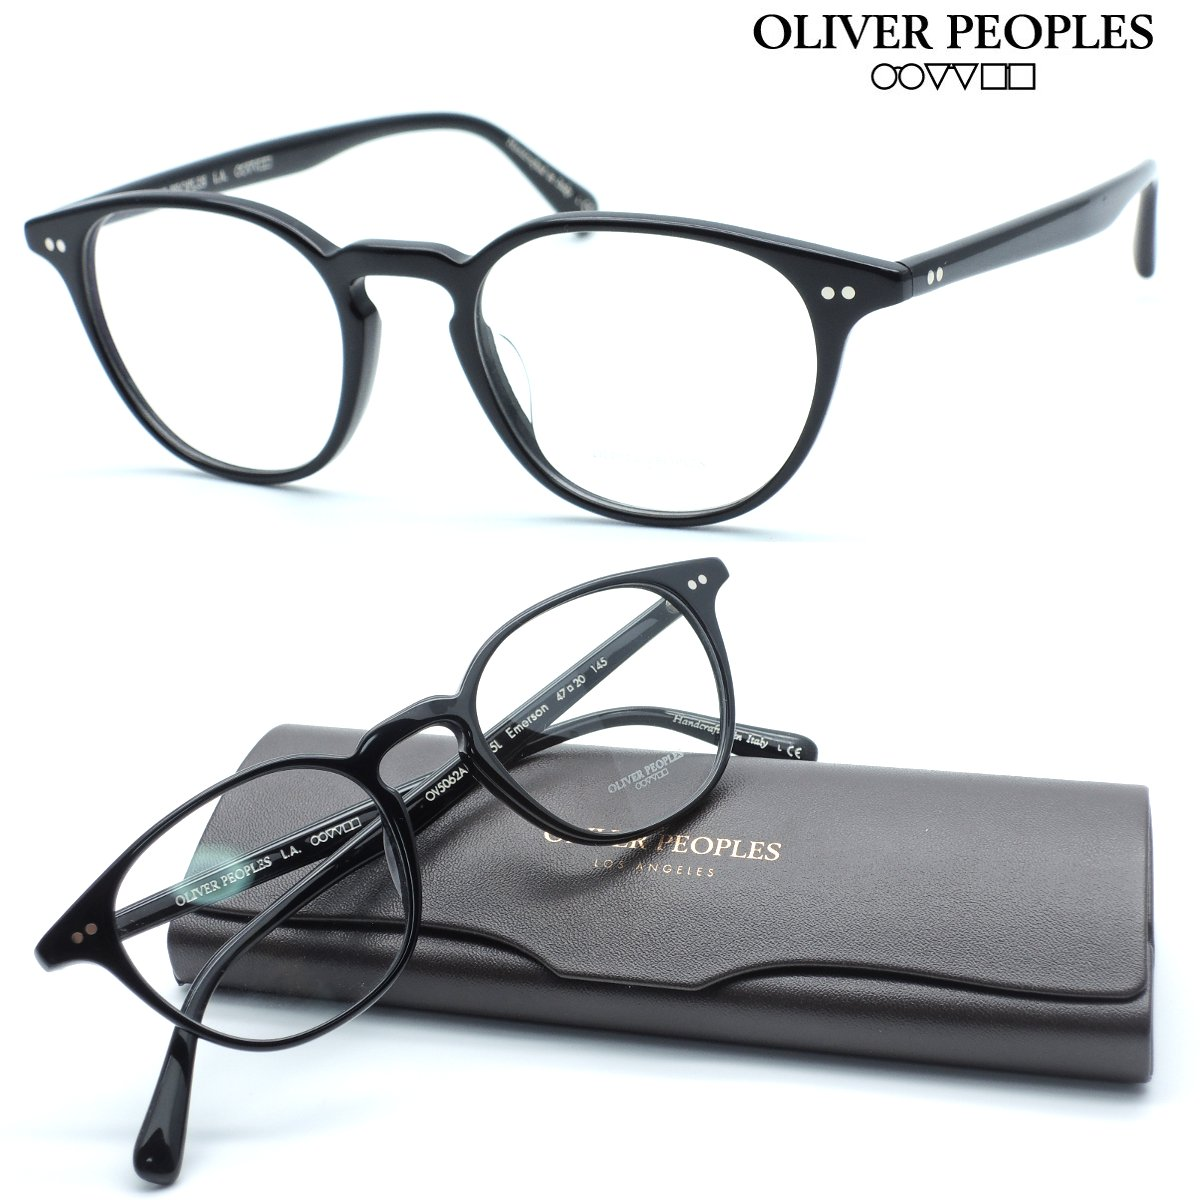 【OLIVER PEOPLES】オリバーピープルズ メガネ OV5062A col.1005L Emerson 度付又は度無レンズ標準装備 【oliver peoples オリバーピープルズ 】【店内全品送料無料】【正規代理店品】クラシック ボストン